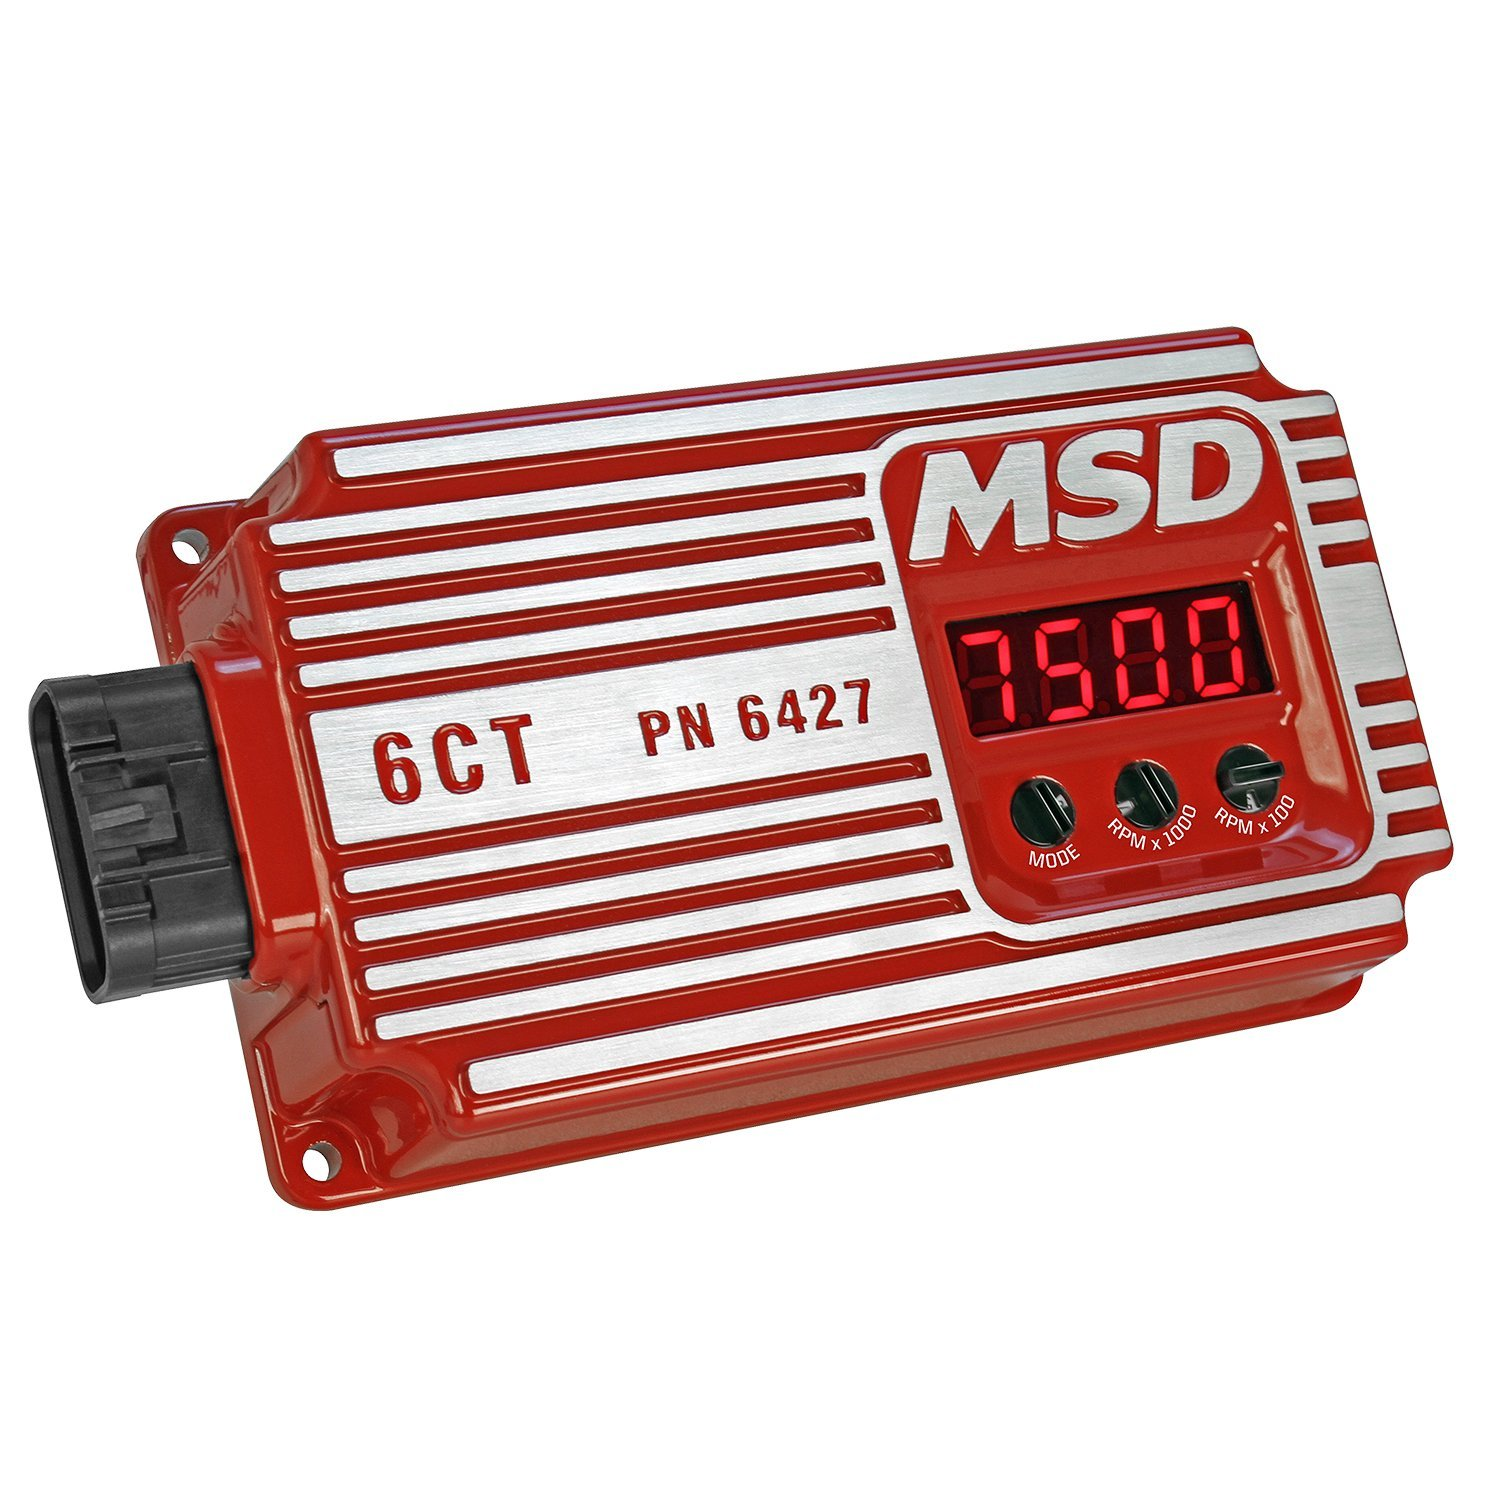 6427 - MSD 6CT Ignition Control Image